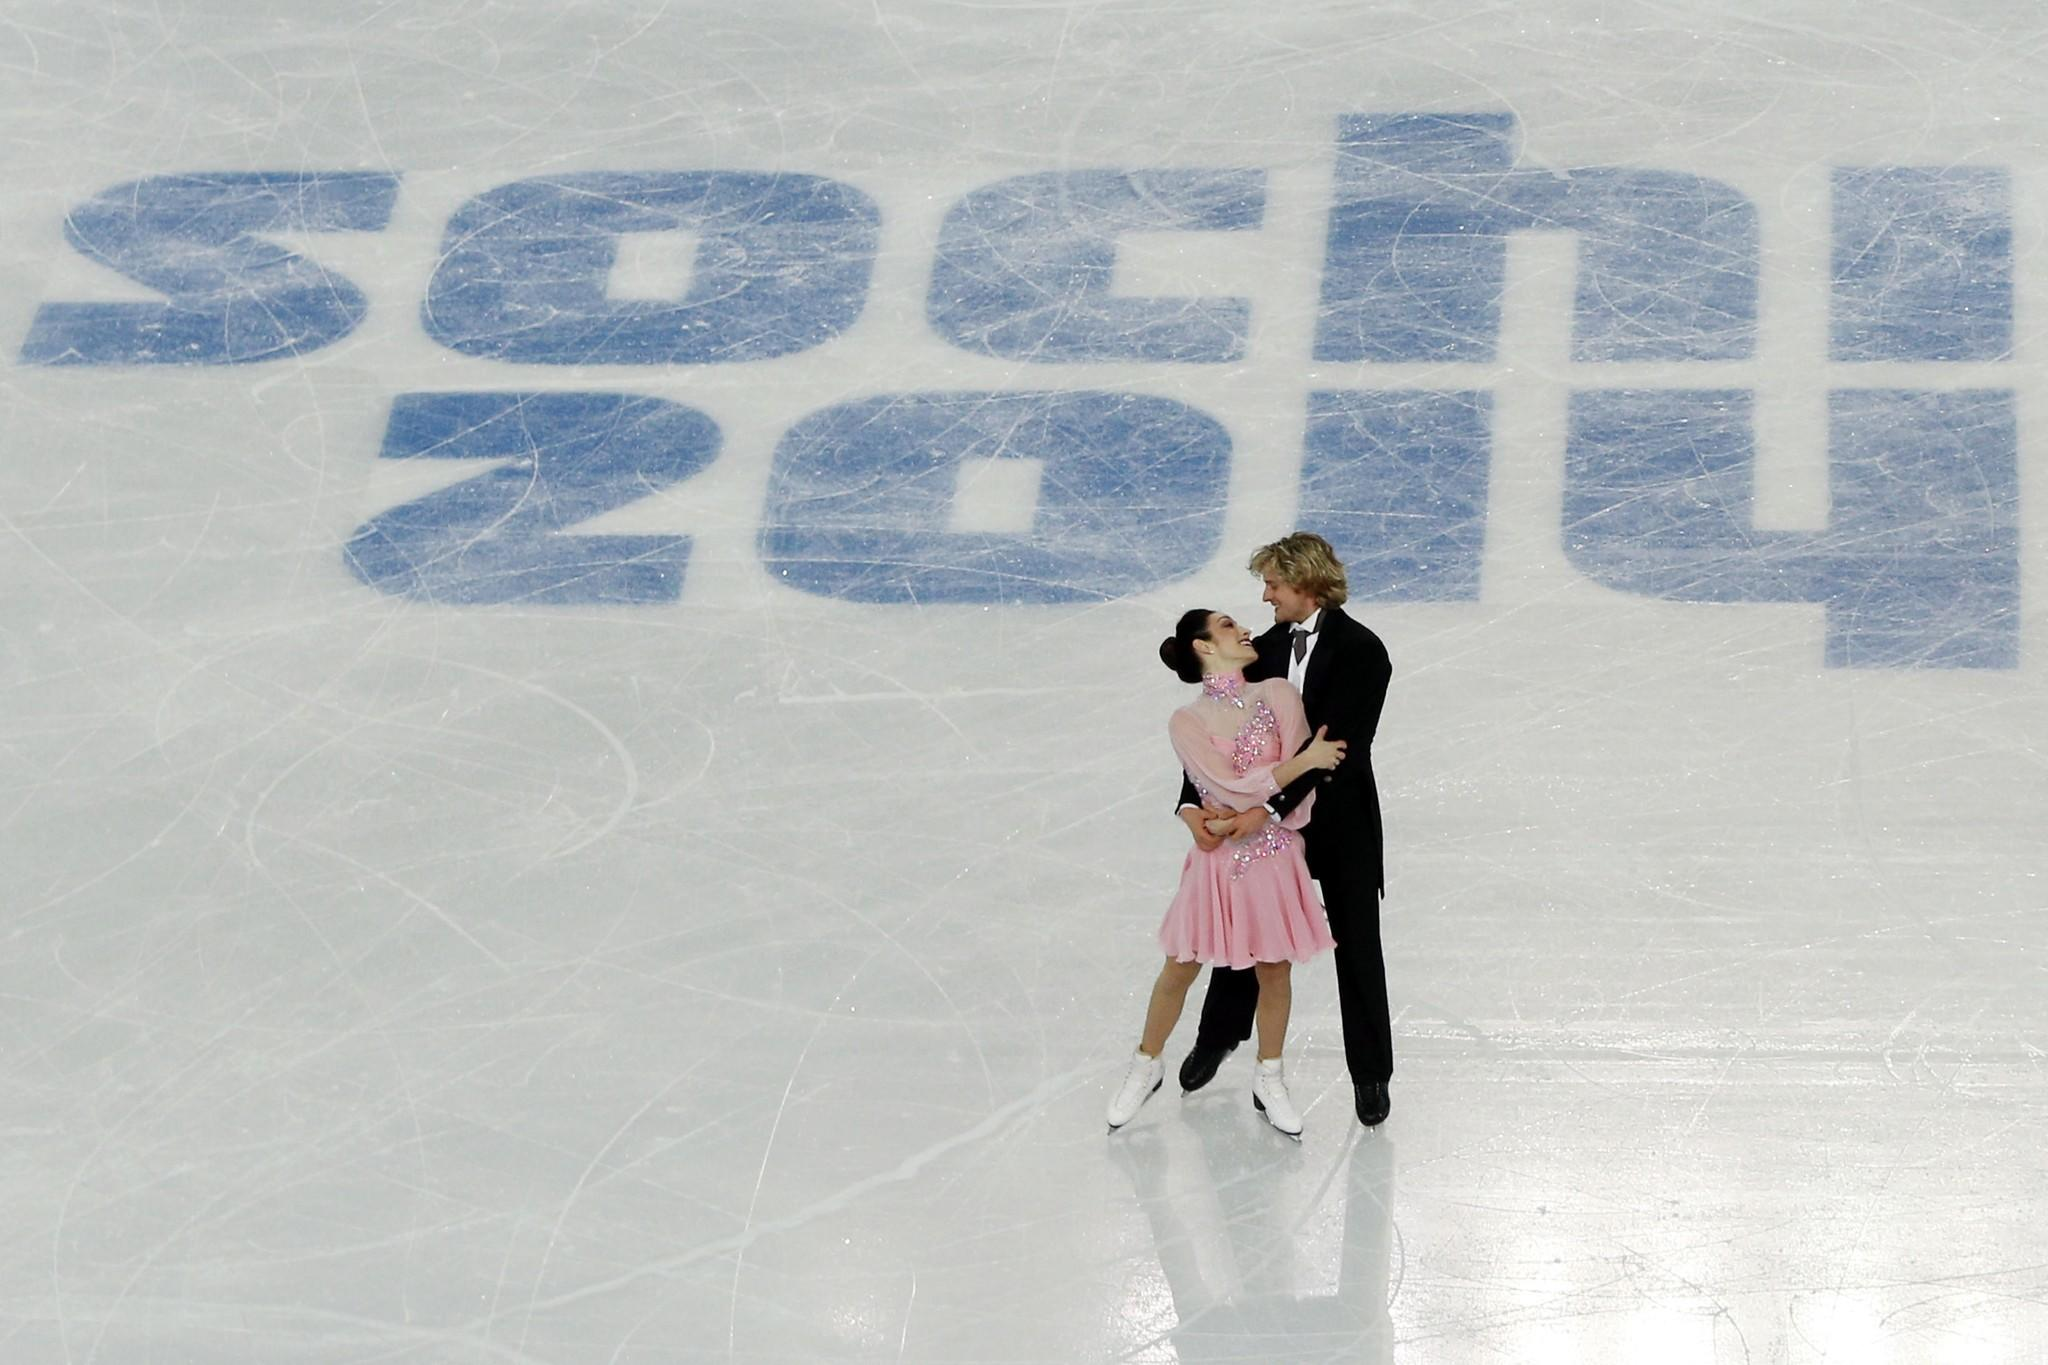 Meryl Davis and Charlie White perform during a training at the Iceberg Skating Palace. (Adrian Dennis/Getty Photo)